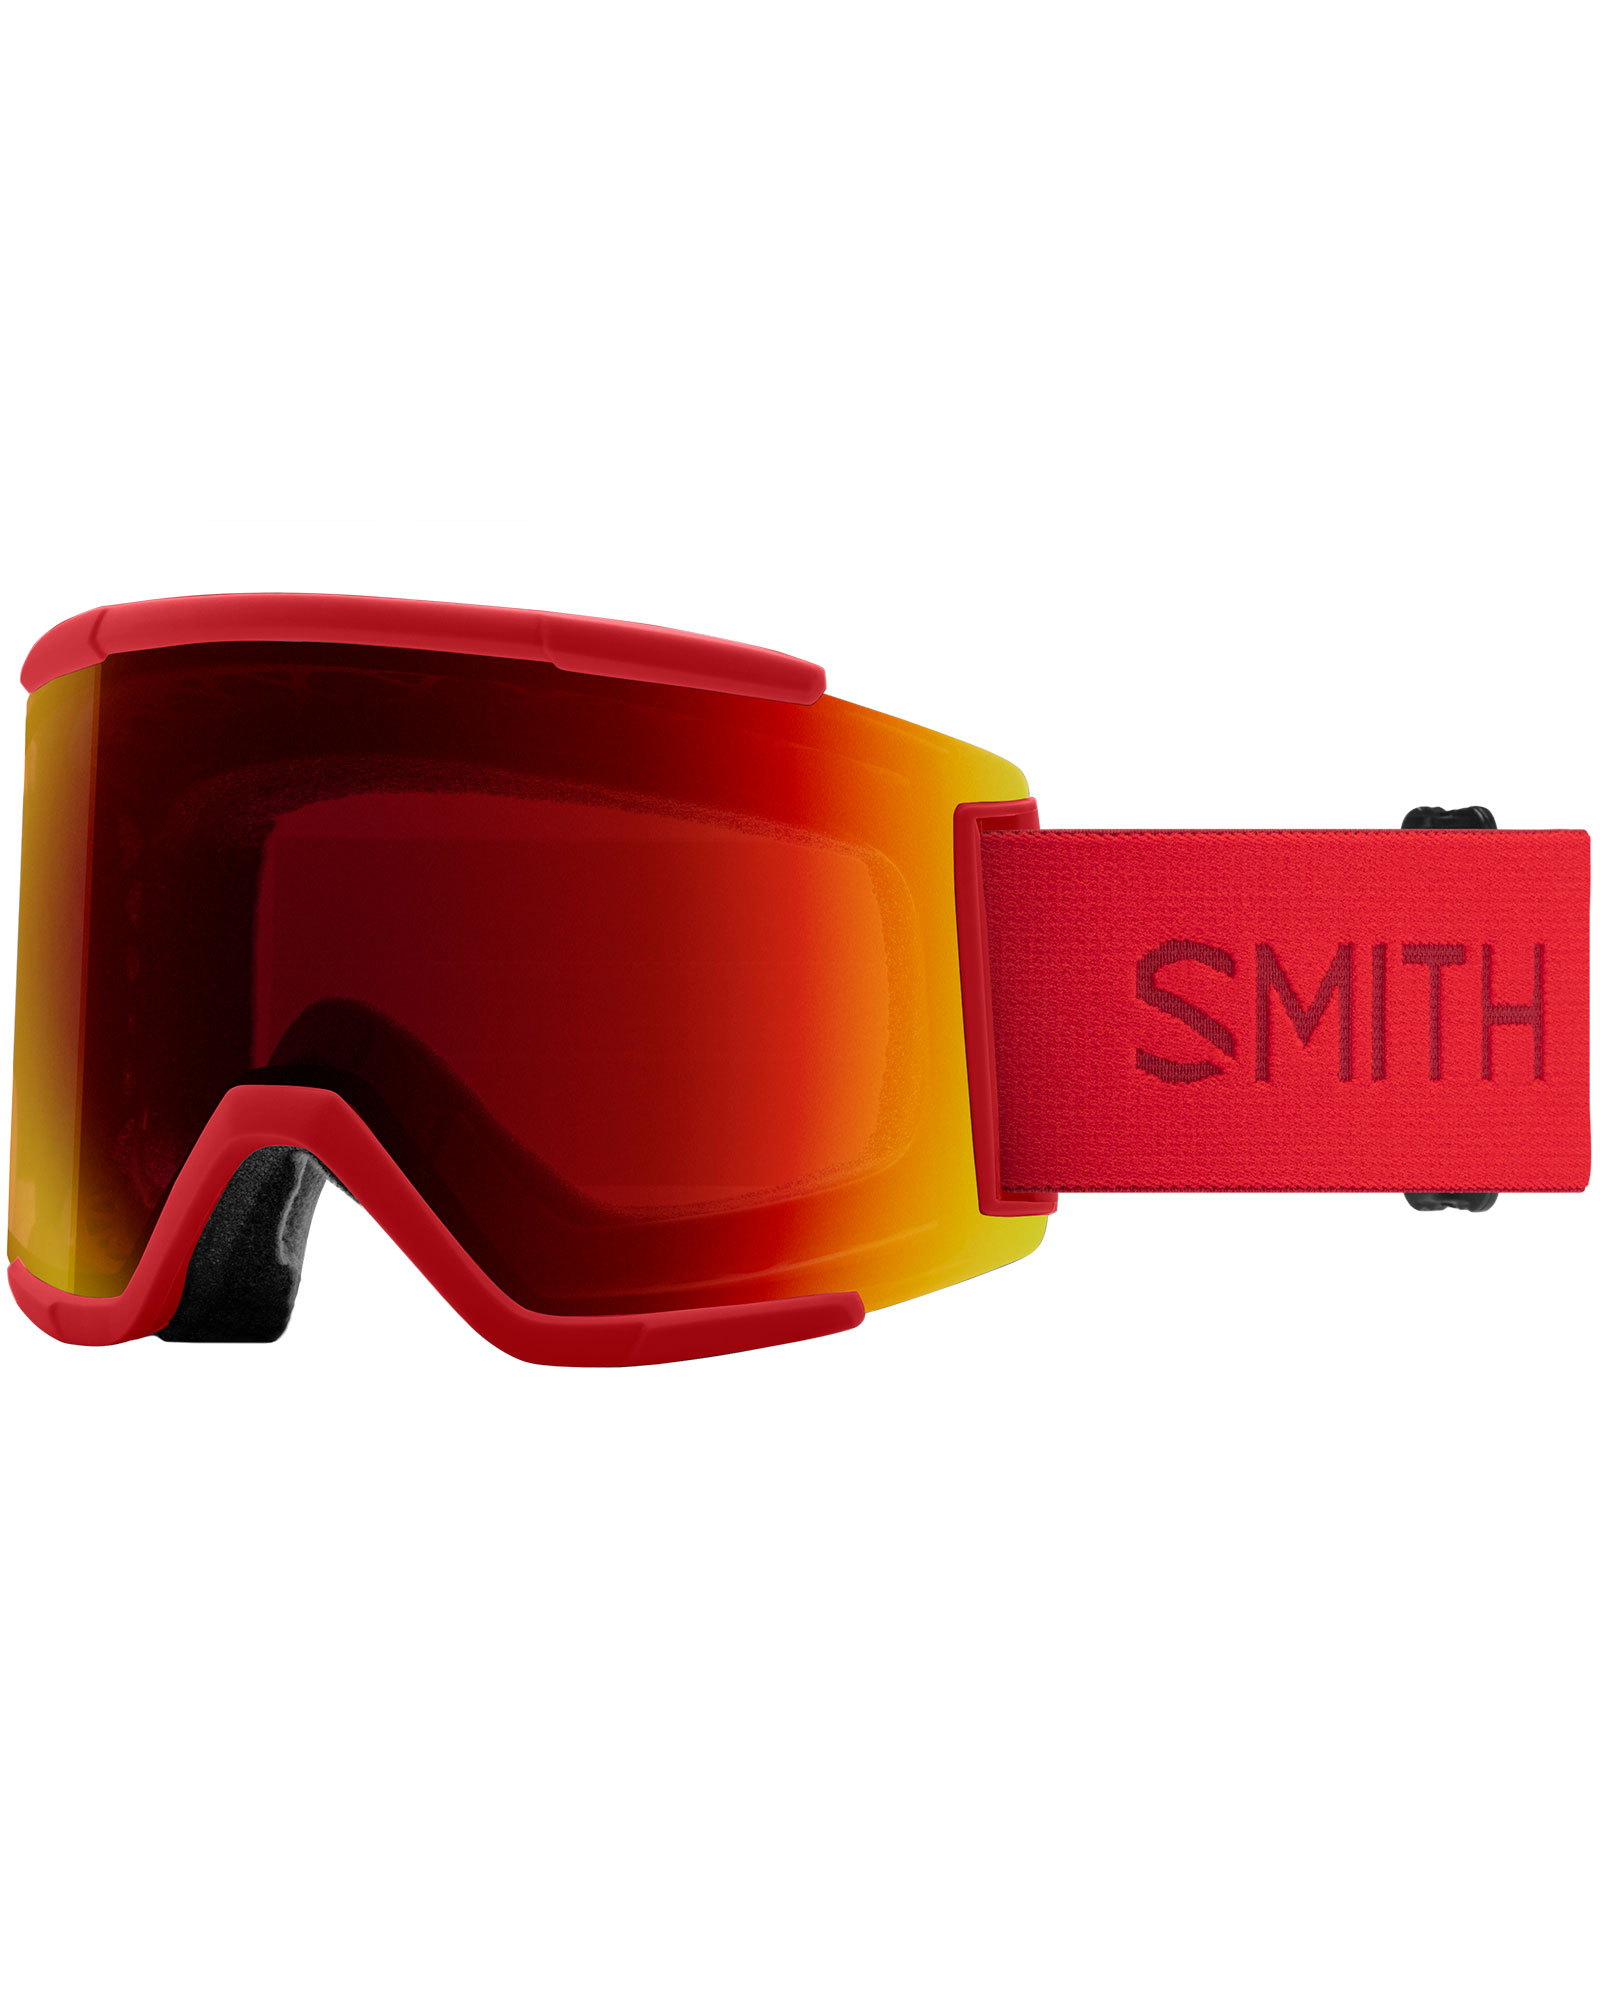 Smith Squad XL Lava / ChromaPop Sun Red Mirror + ChromaPop Storm Yellow Flash Goggles 2020 / 2021 0